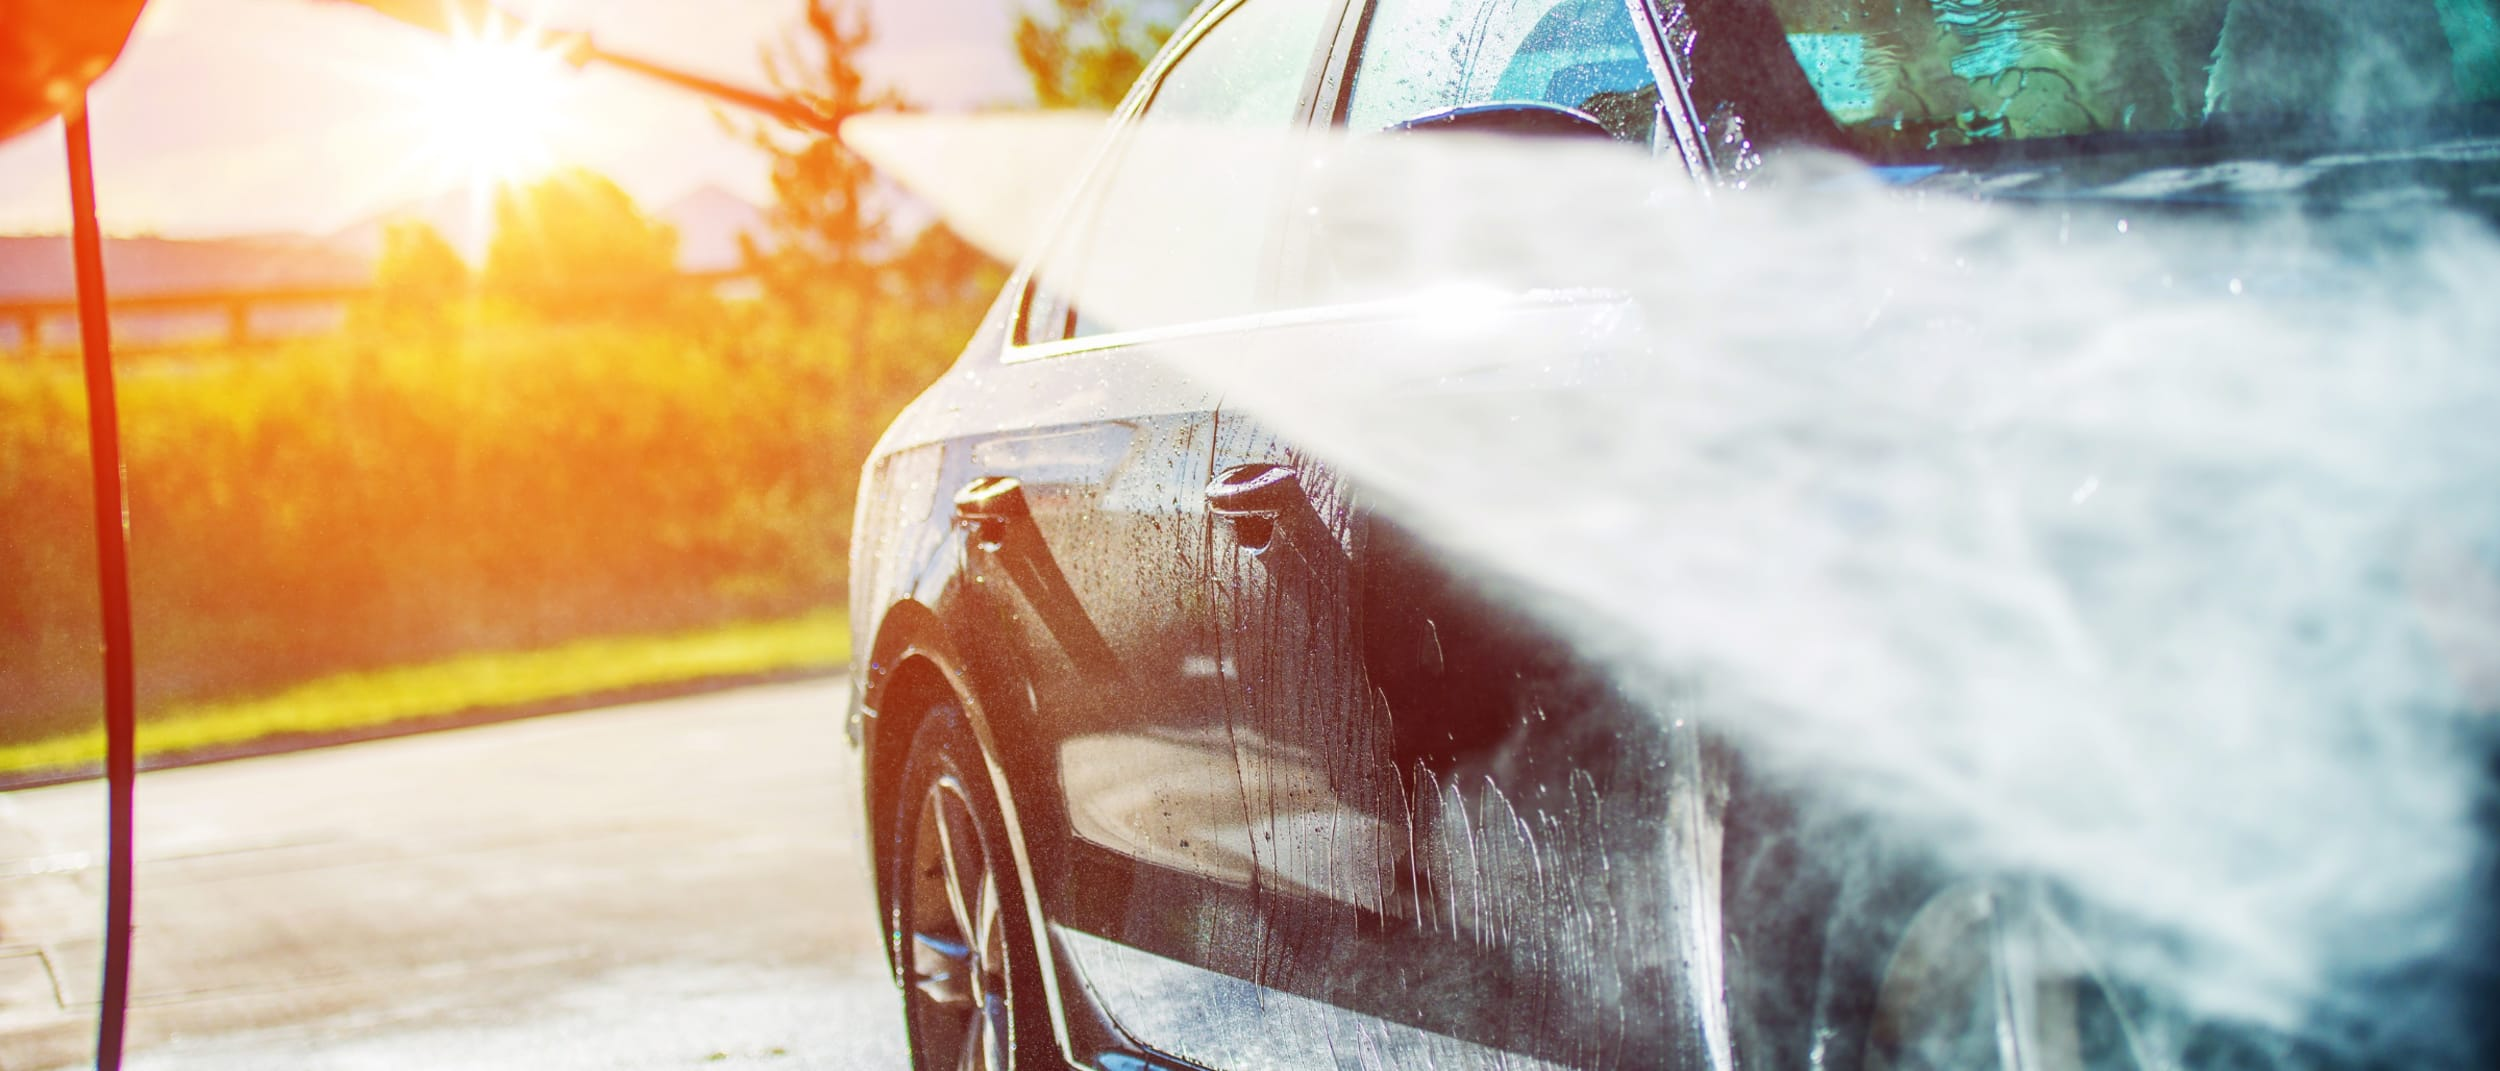 Concierge Car Wash: $10 off your next service